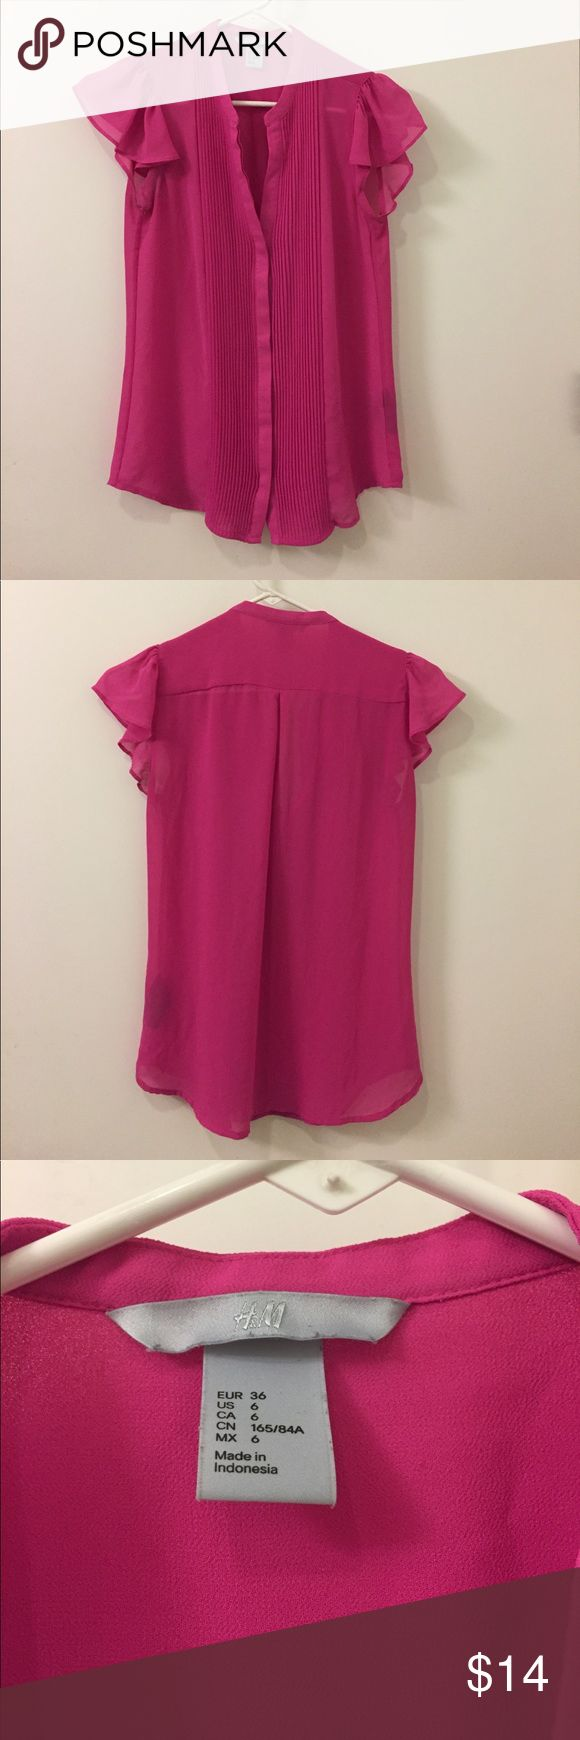 Pink top from h&m Cute bright / hot pink top from h&m! Runs small so fits like small in other brands. Barely used, but small mark on right armpit area. H&M Tops Blouses